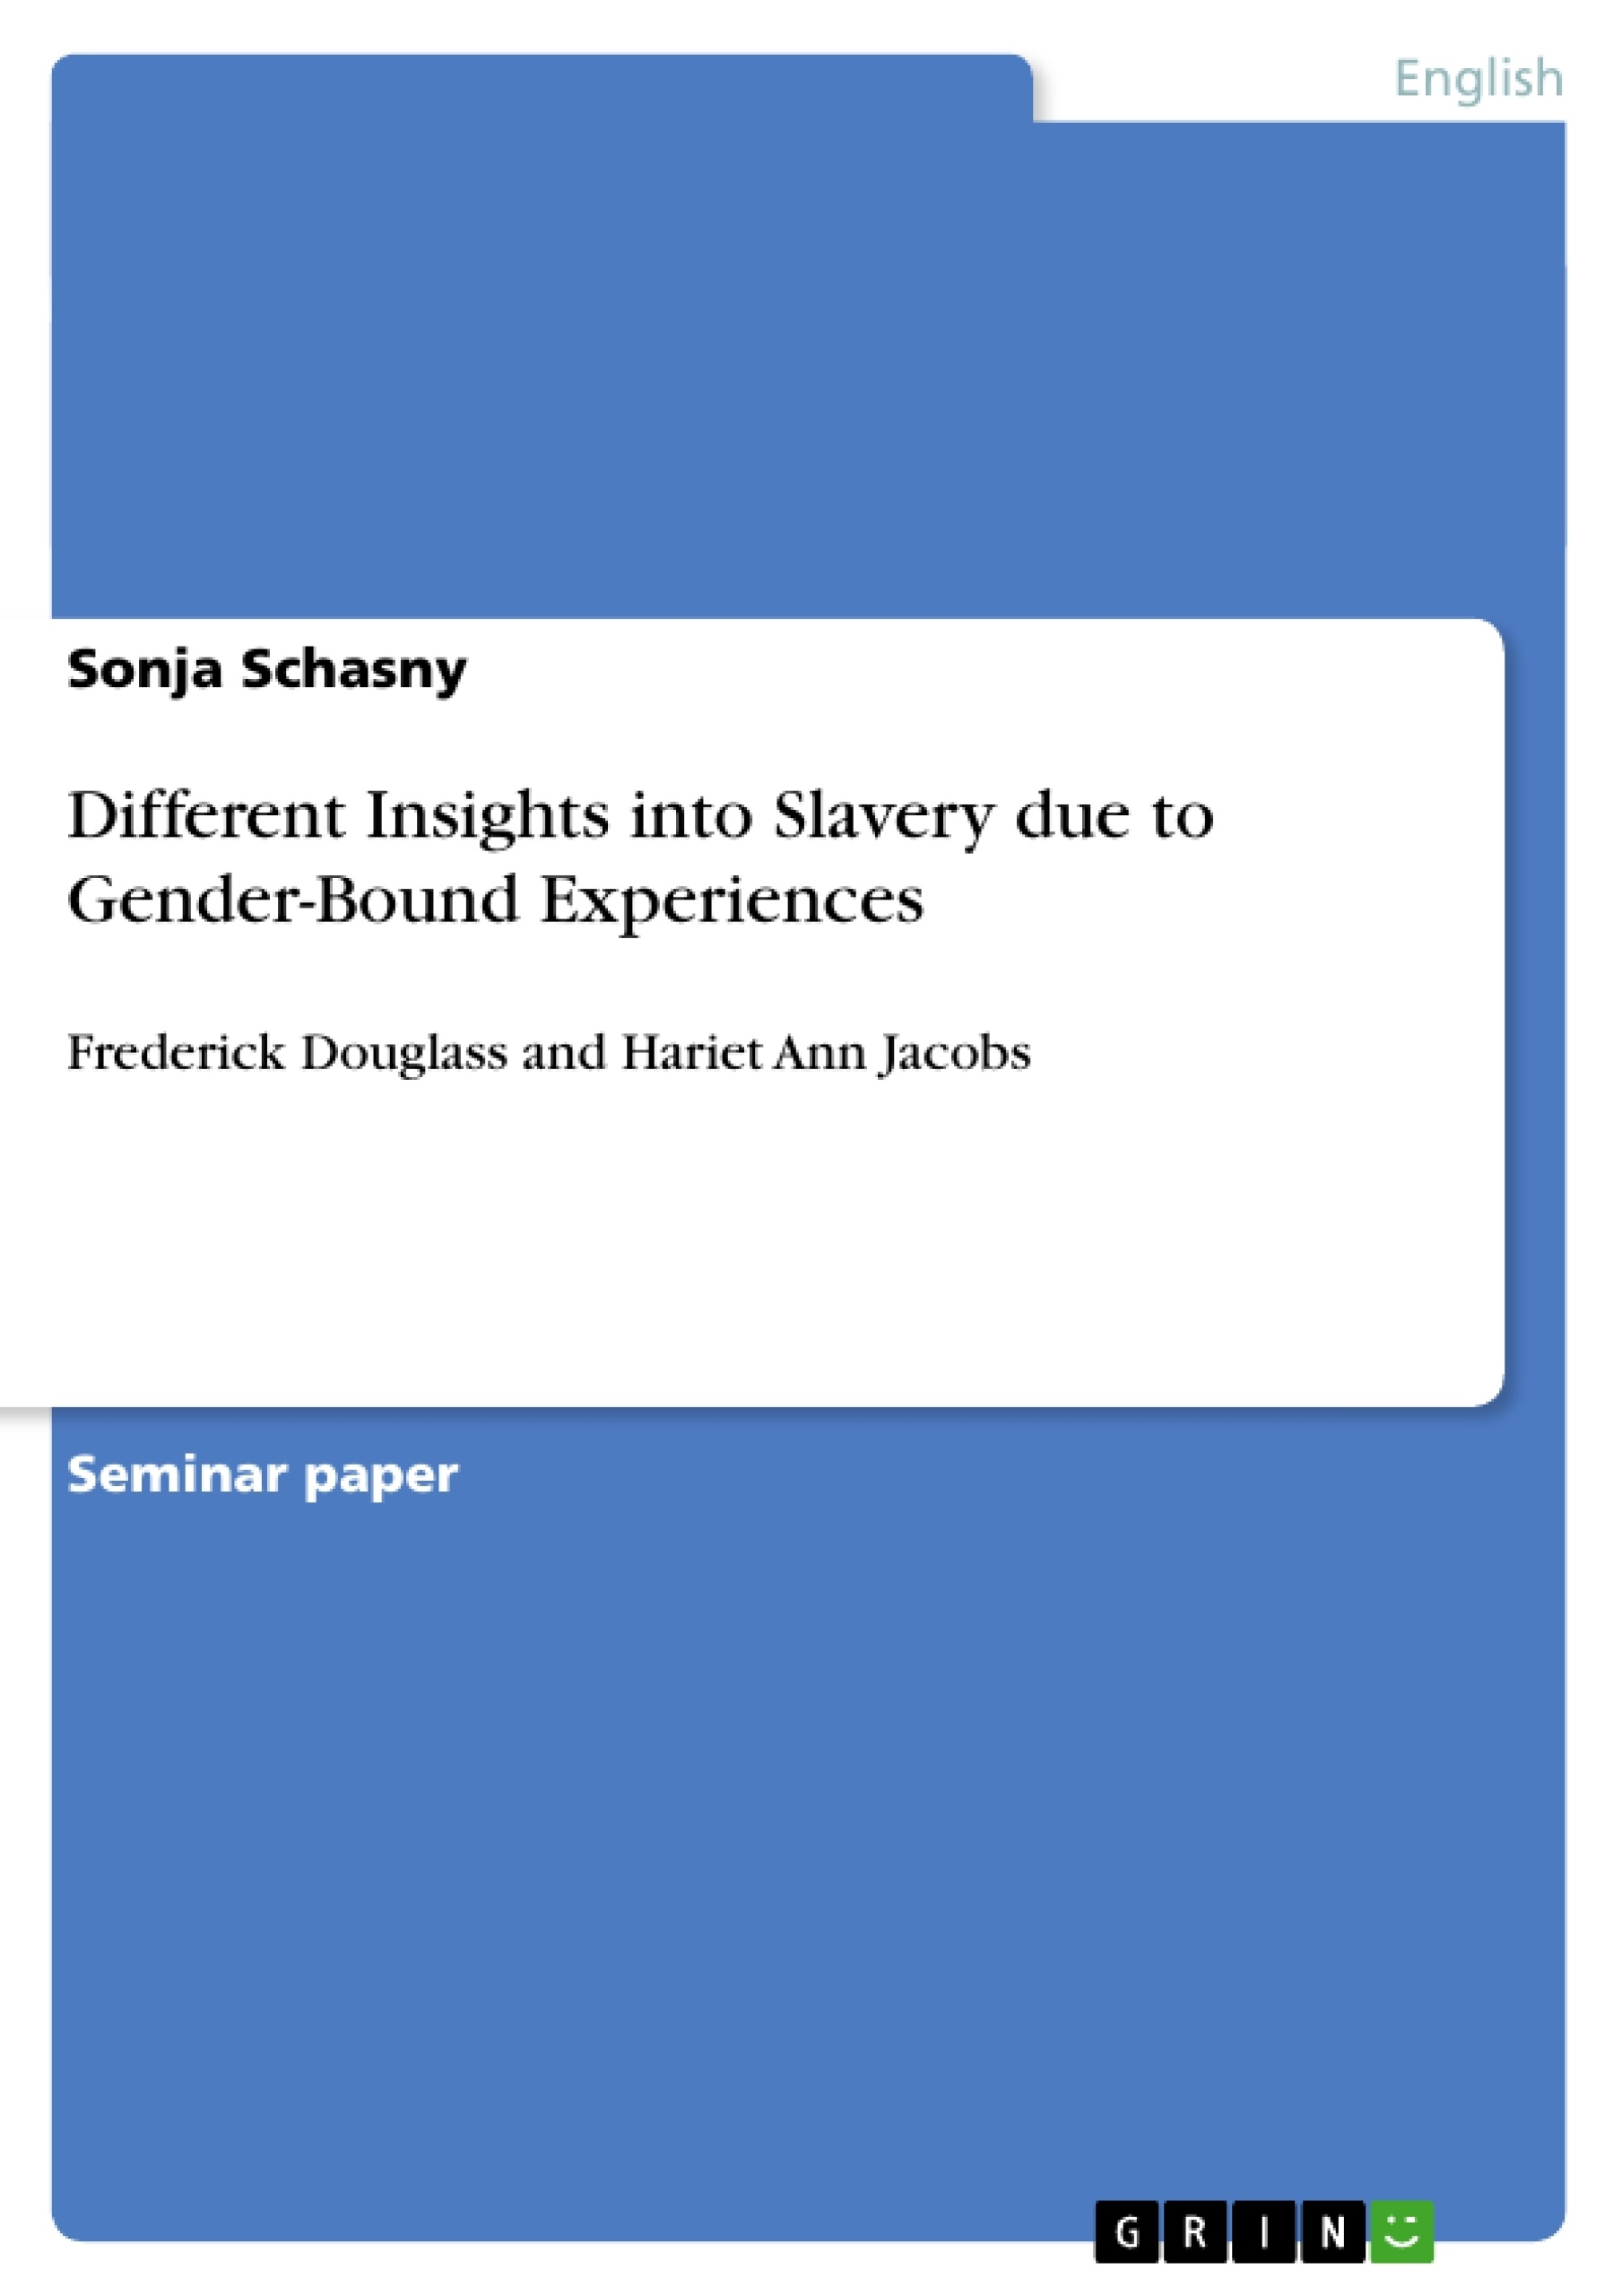 Title: Different Insights into Slavery due to Gender-Bound Experiences